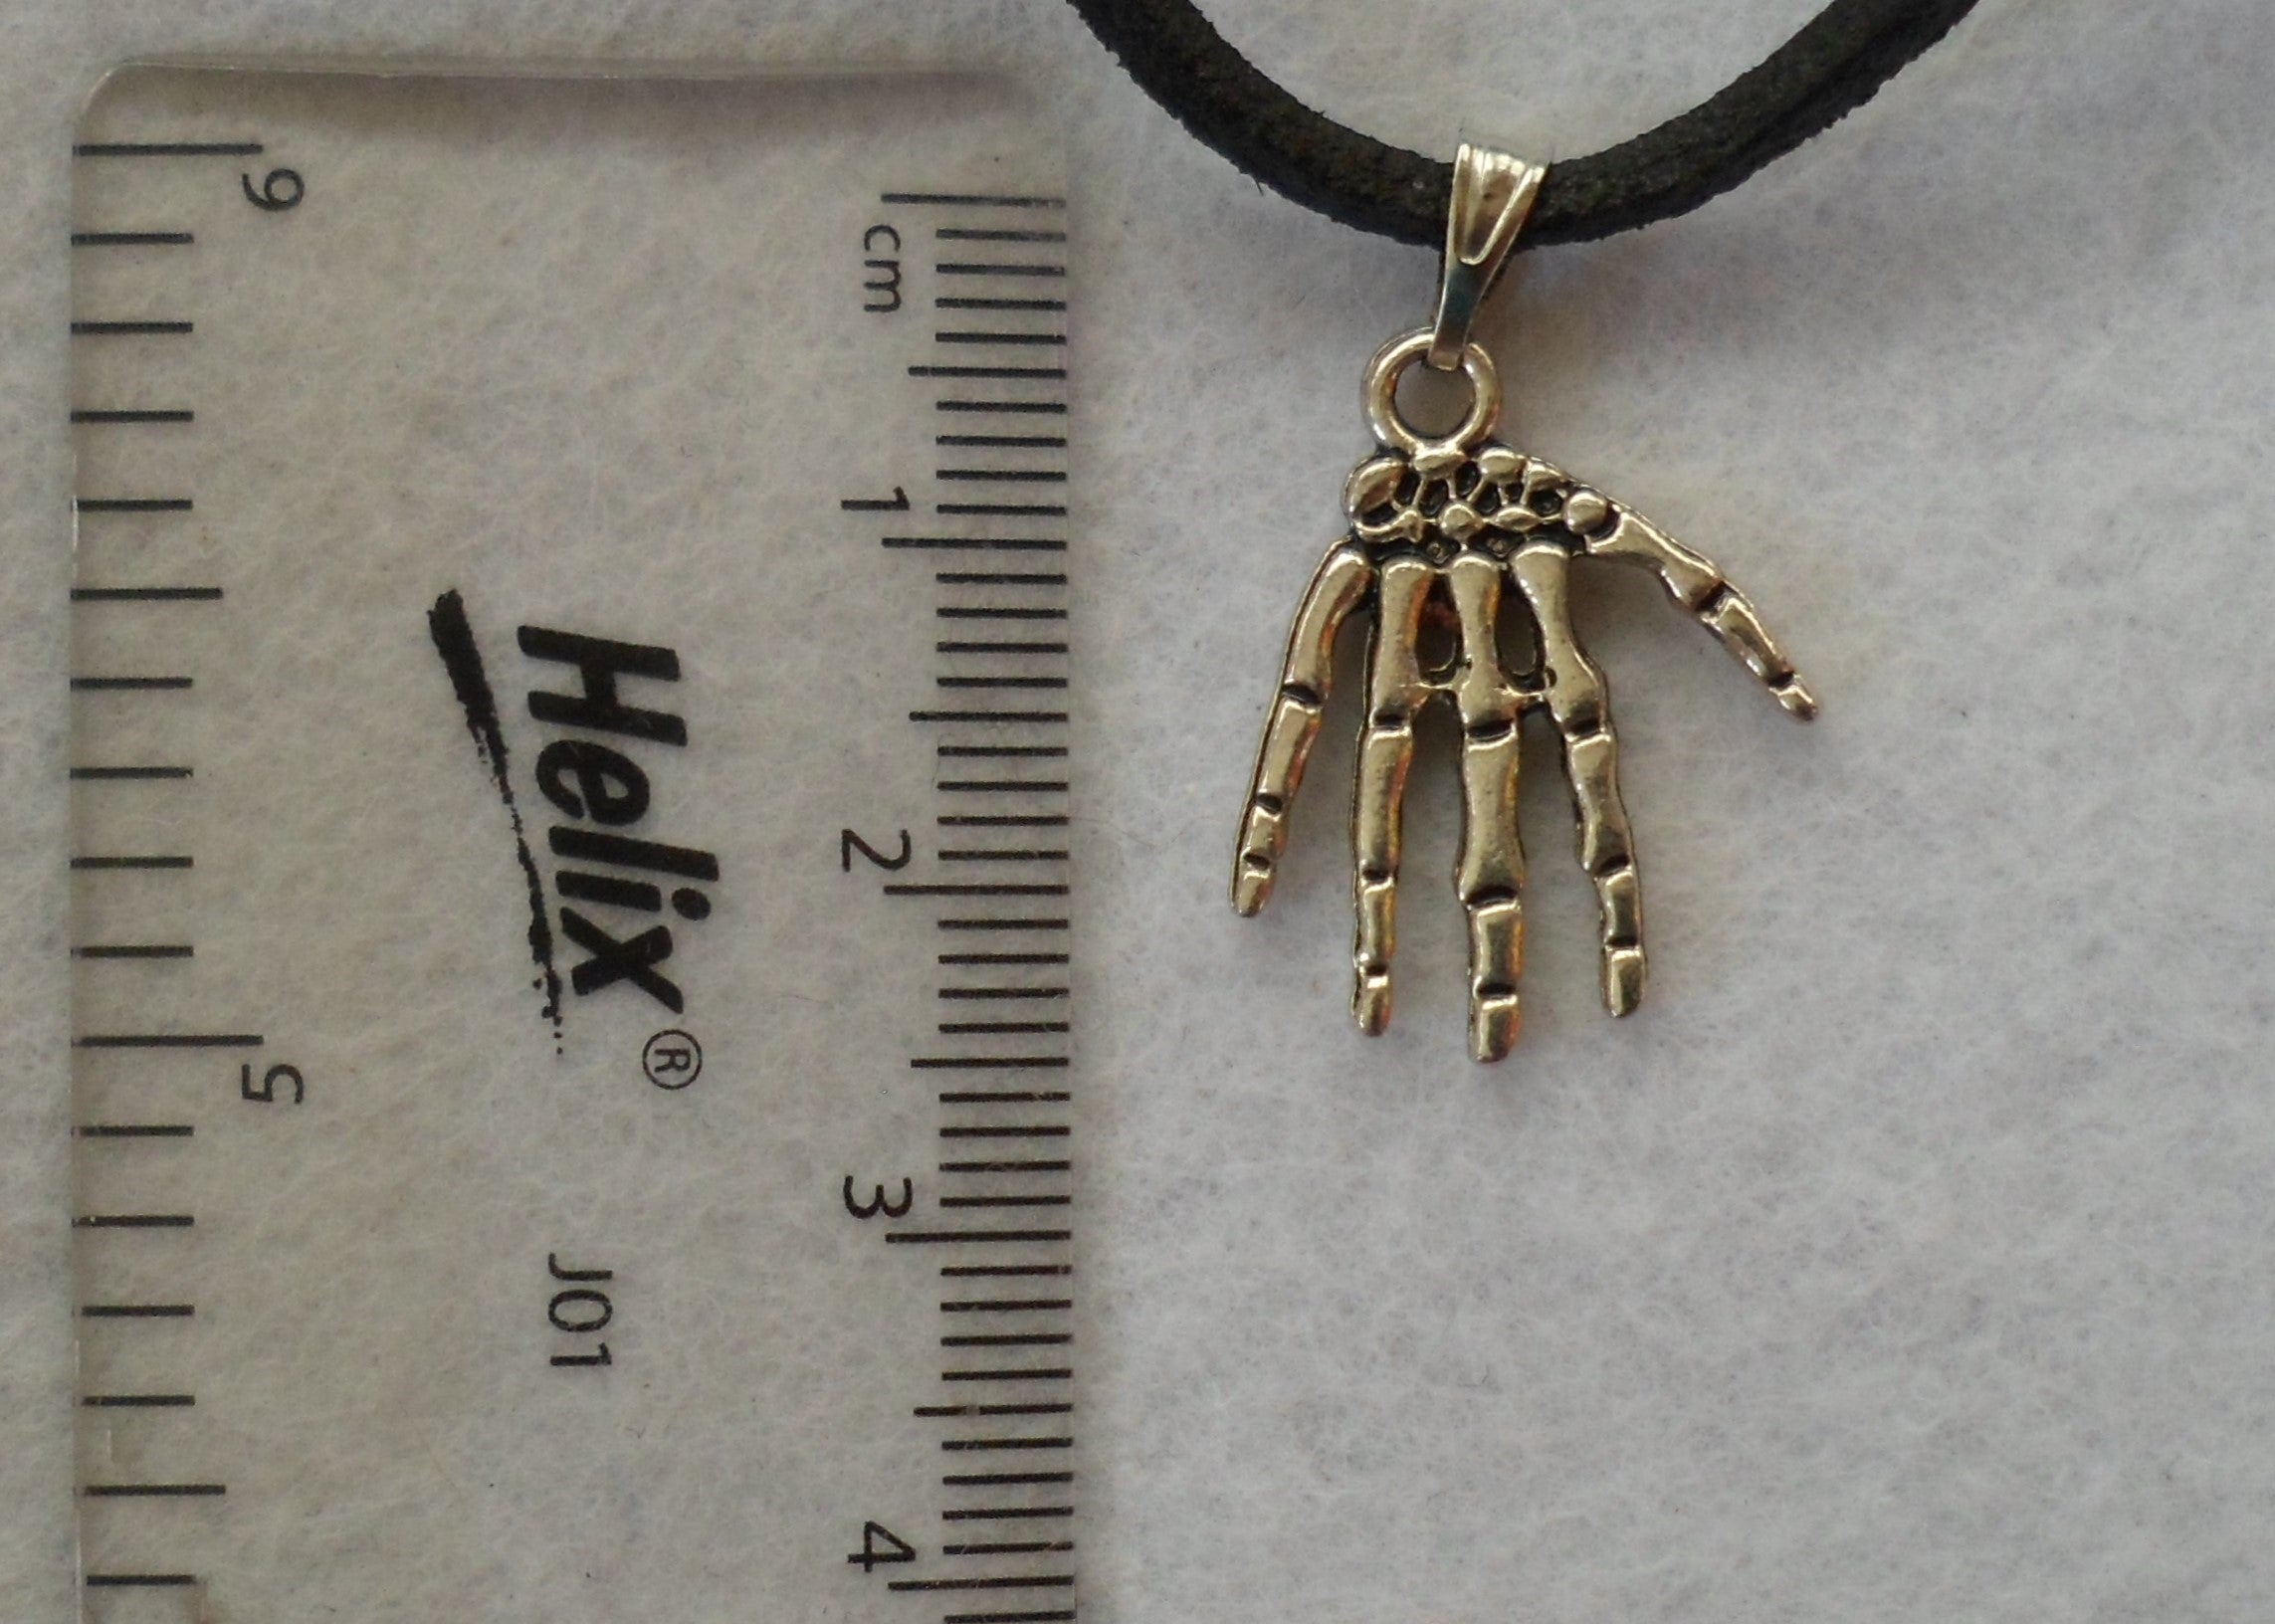 Skeletal Hands Leather Thong Necklace and Earring Set - Tully Crafts